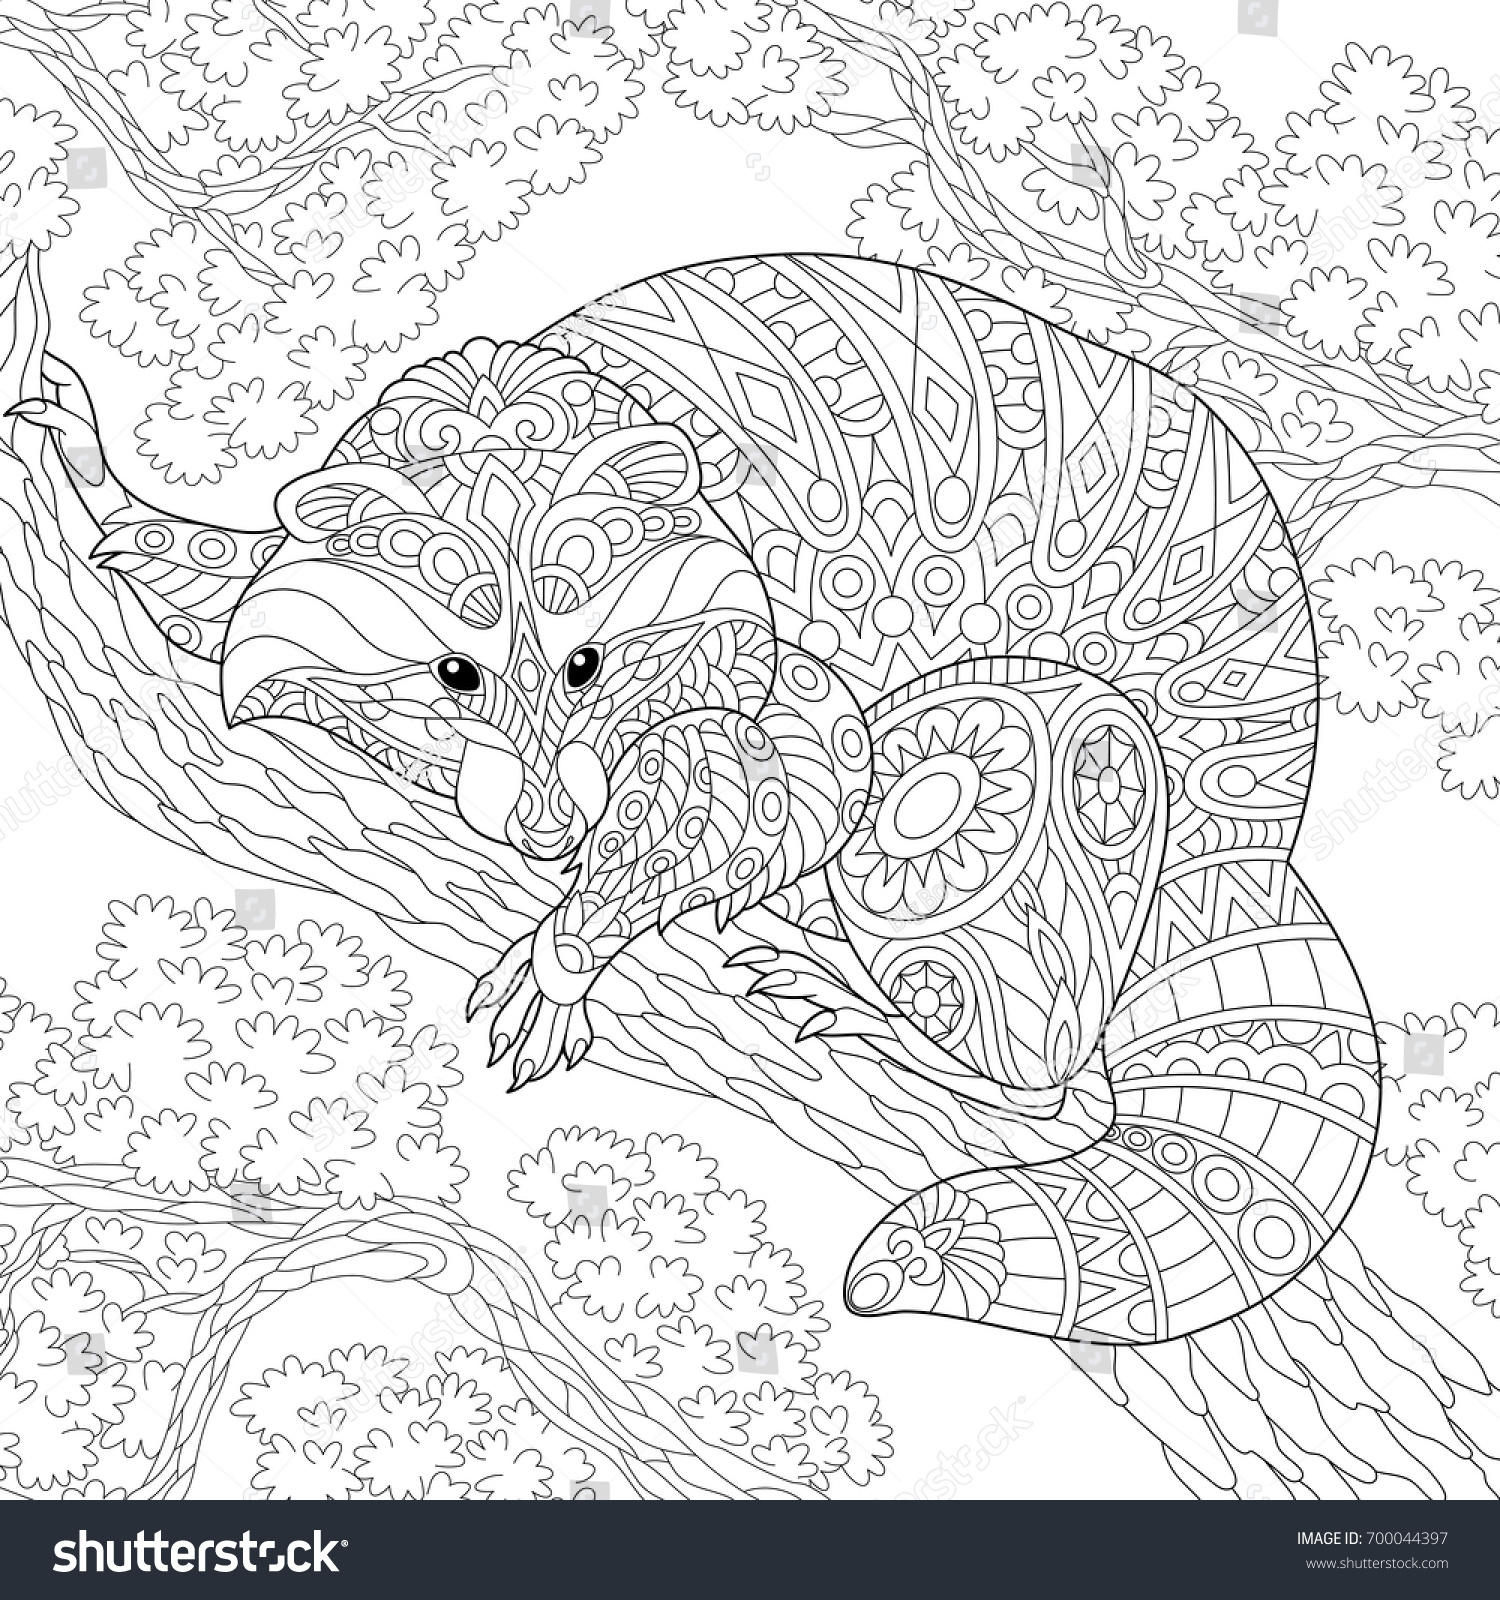 coloring page raccoon sitting on tree stock vector 700044397